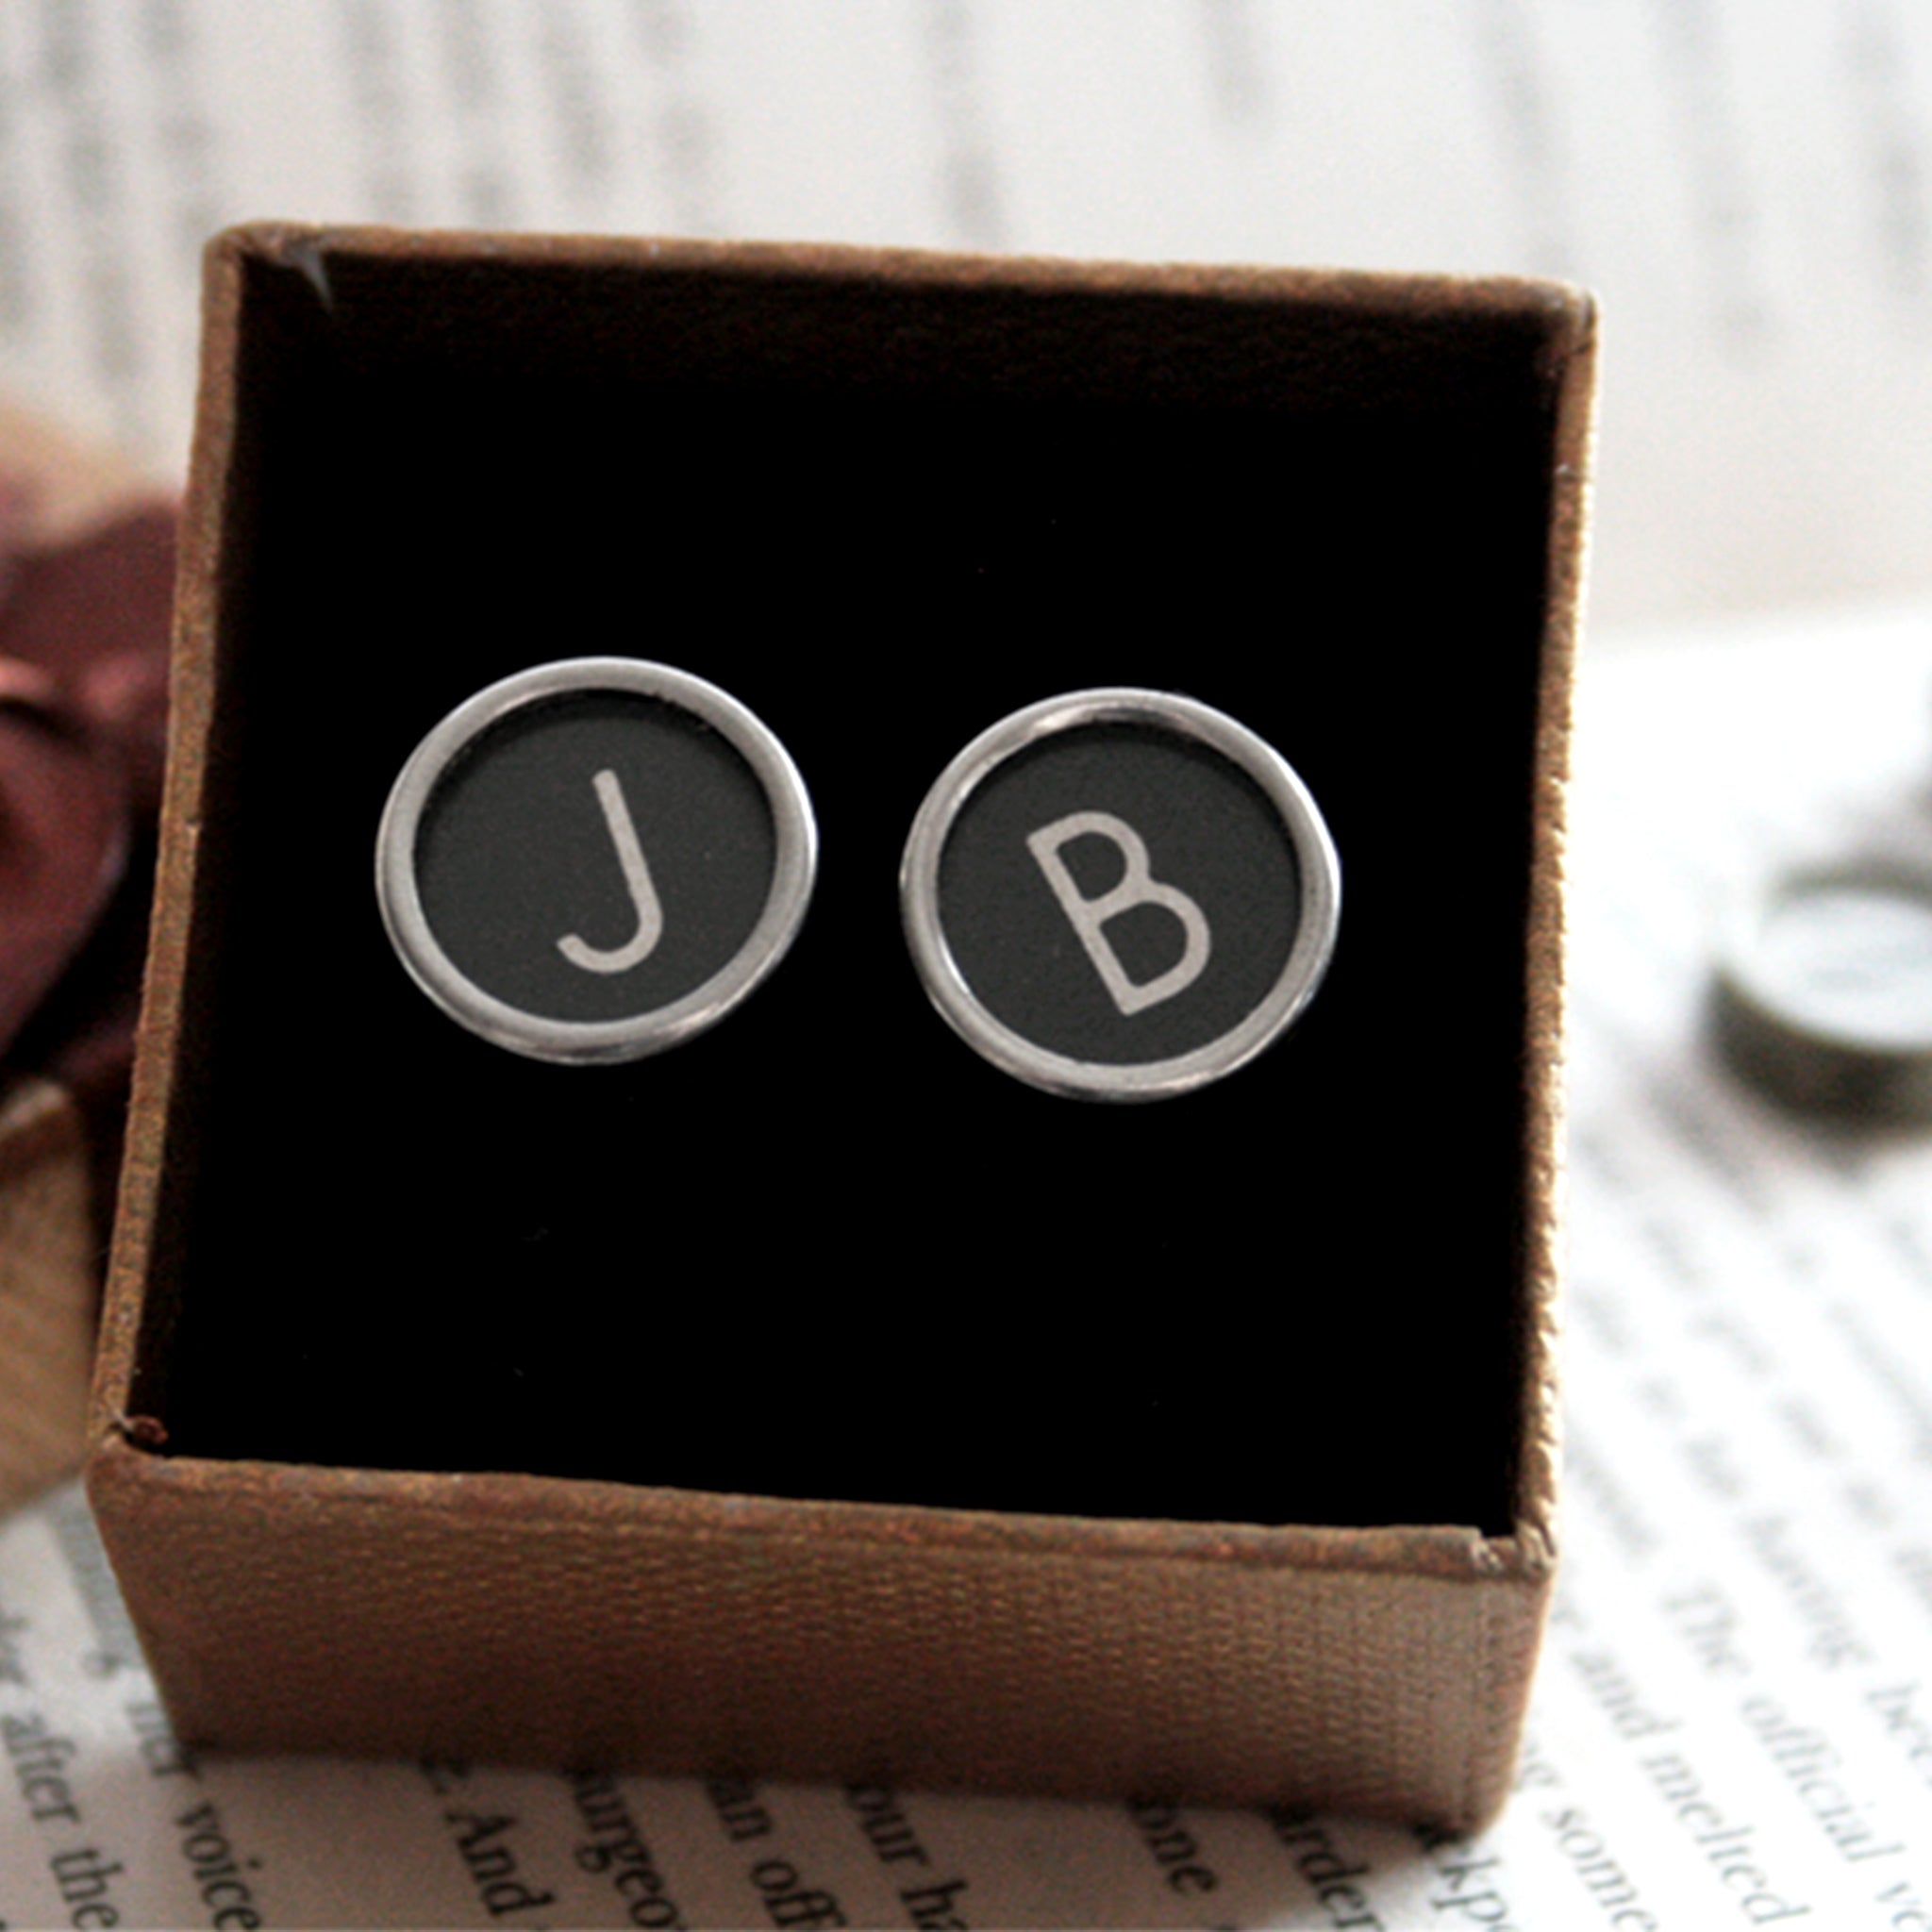 Black Personalised cufflinks with initials made of real typewriter keys J and B in a box